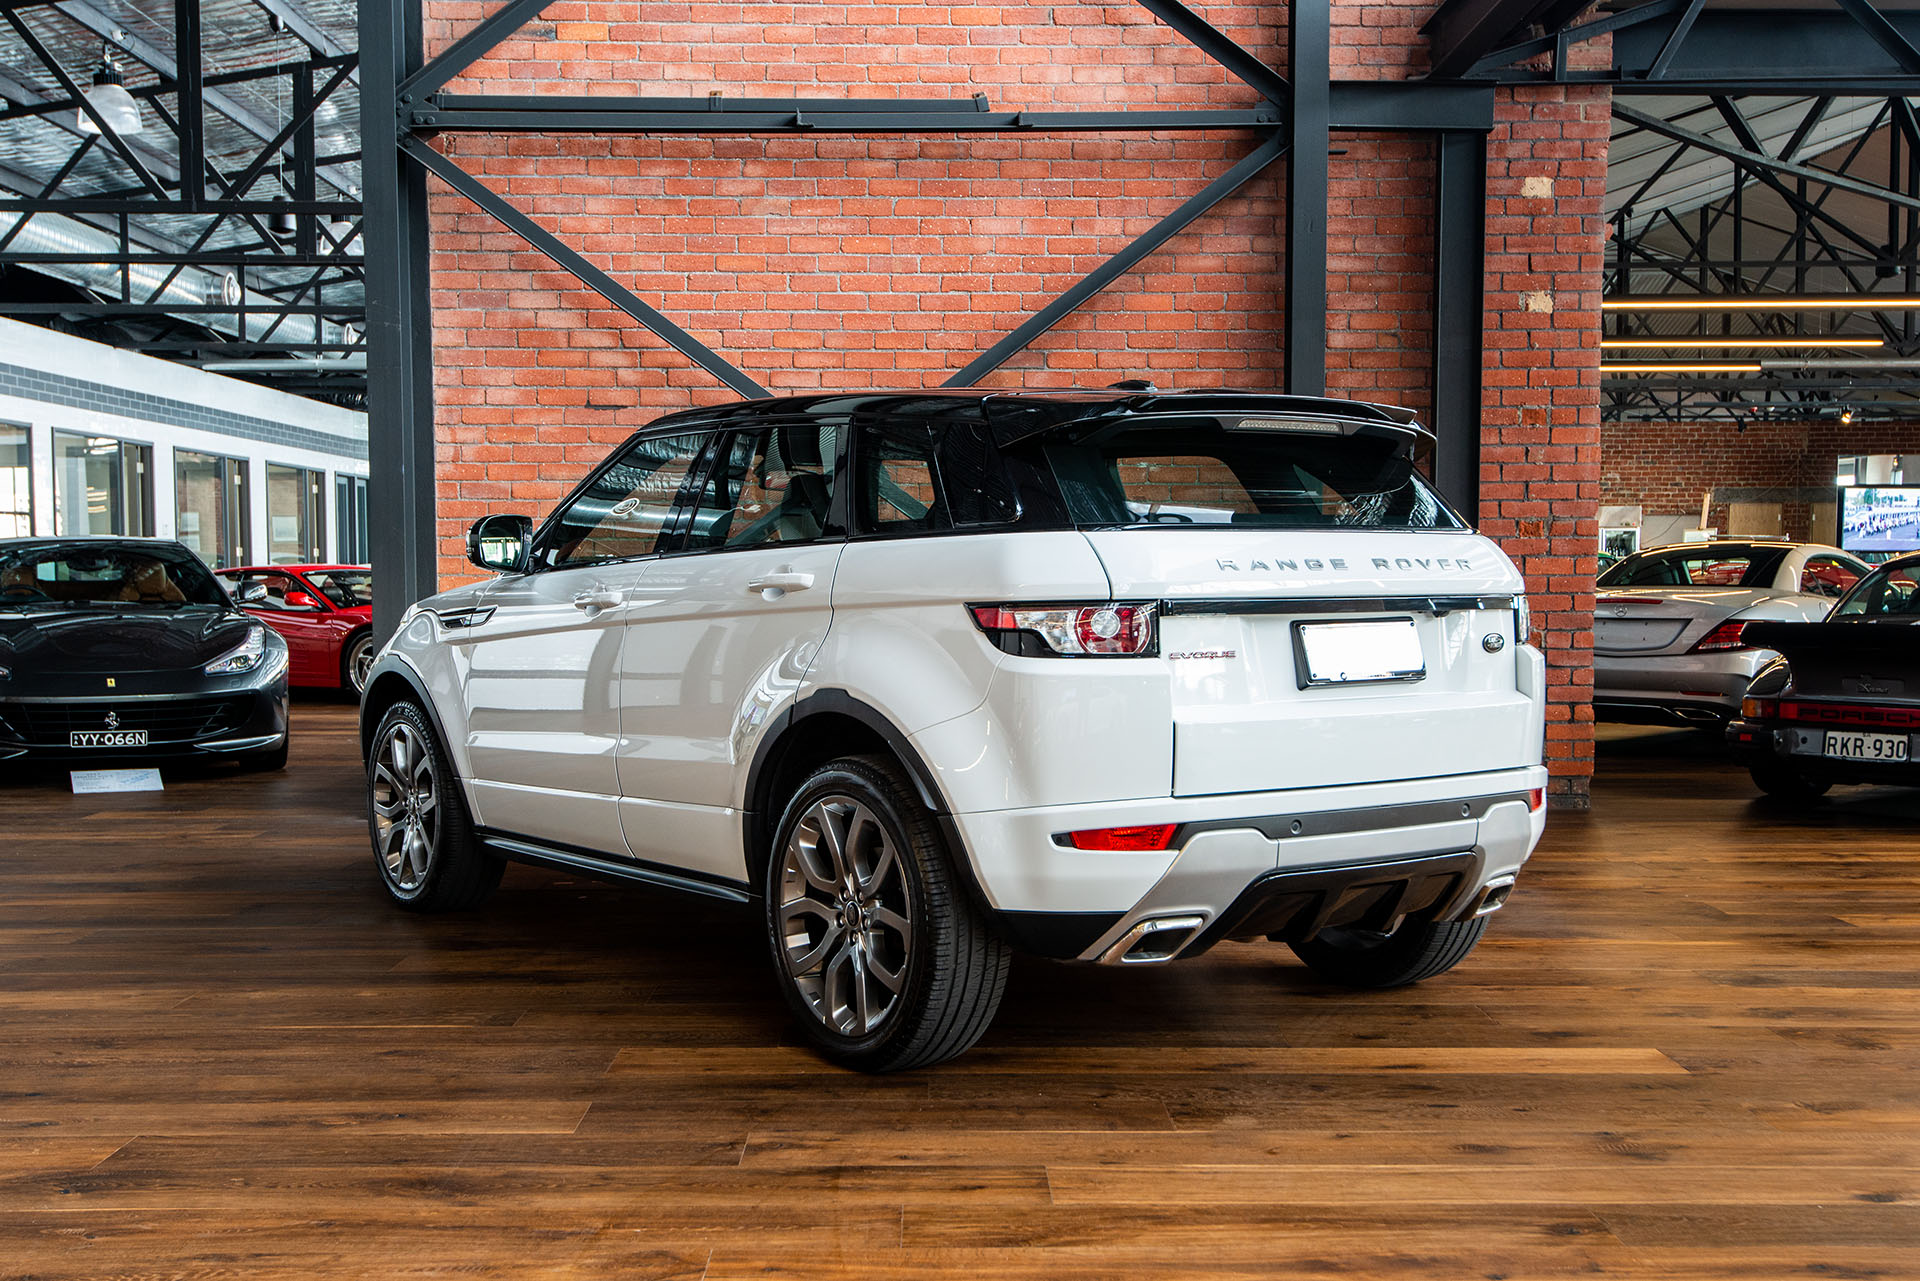 Range Rover Interior >> 2013 Range Rover Evoque Si4 Dynamic - Richmonds - Classic ...